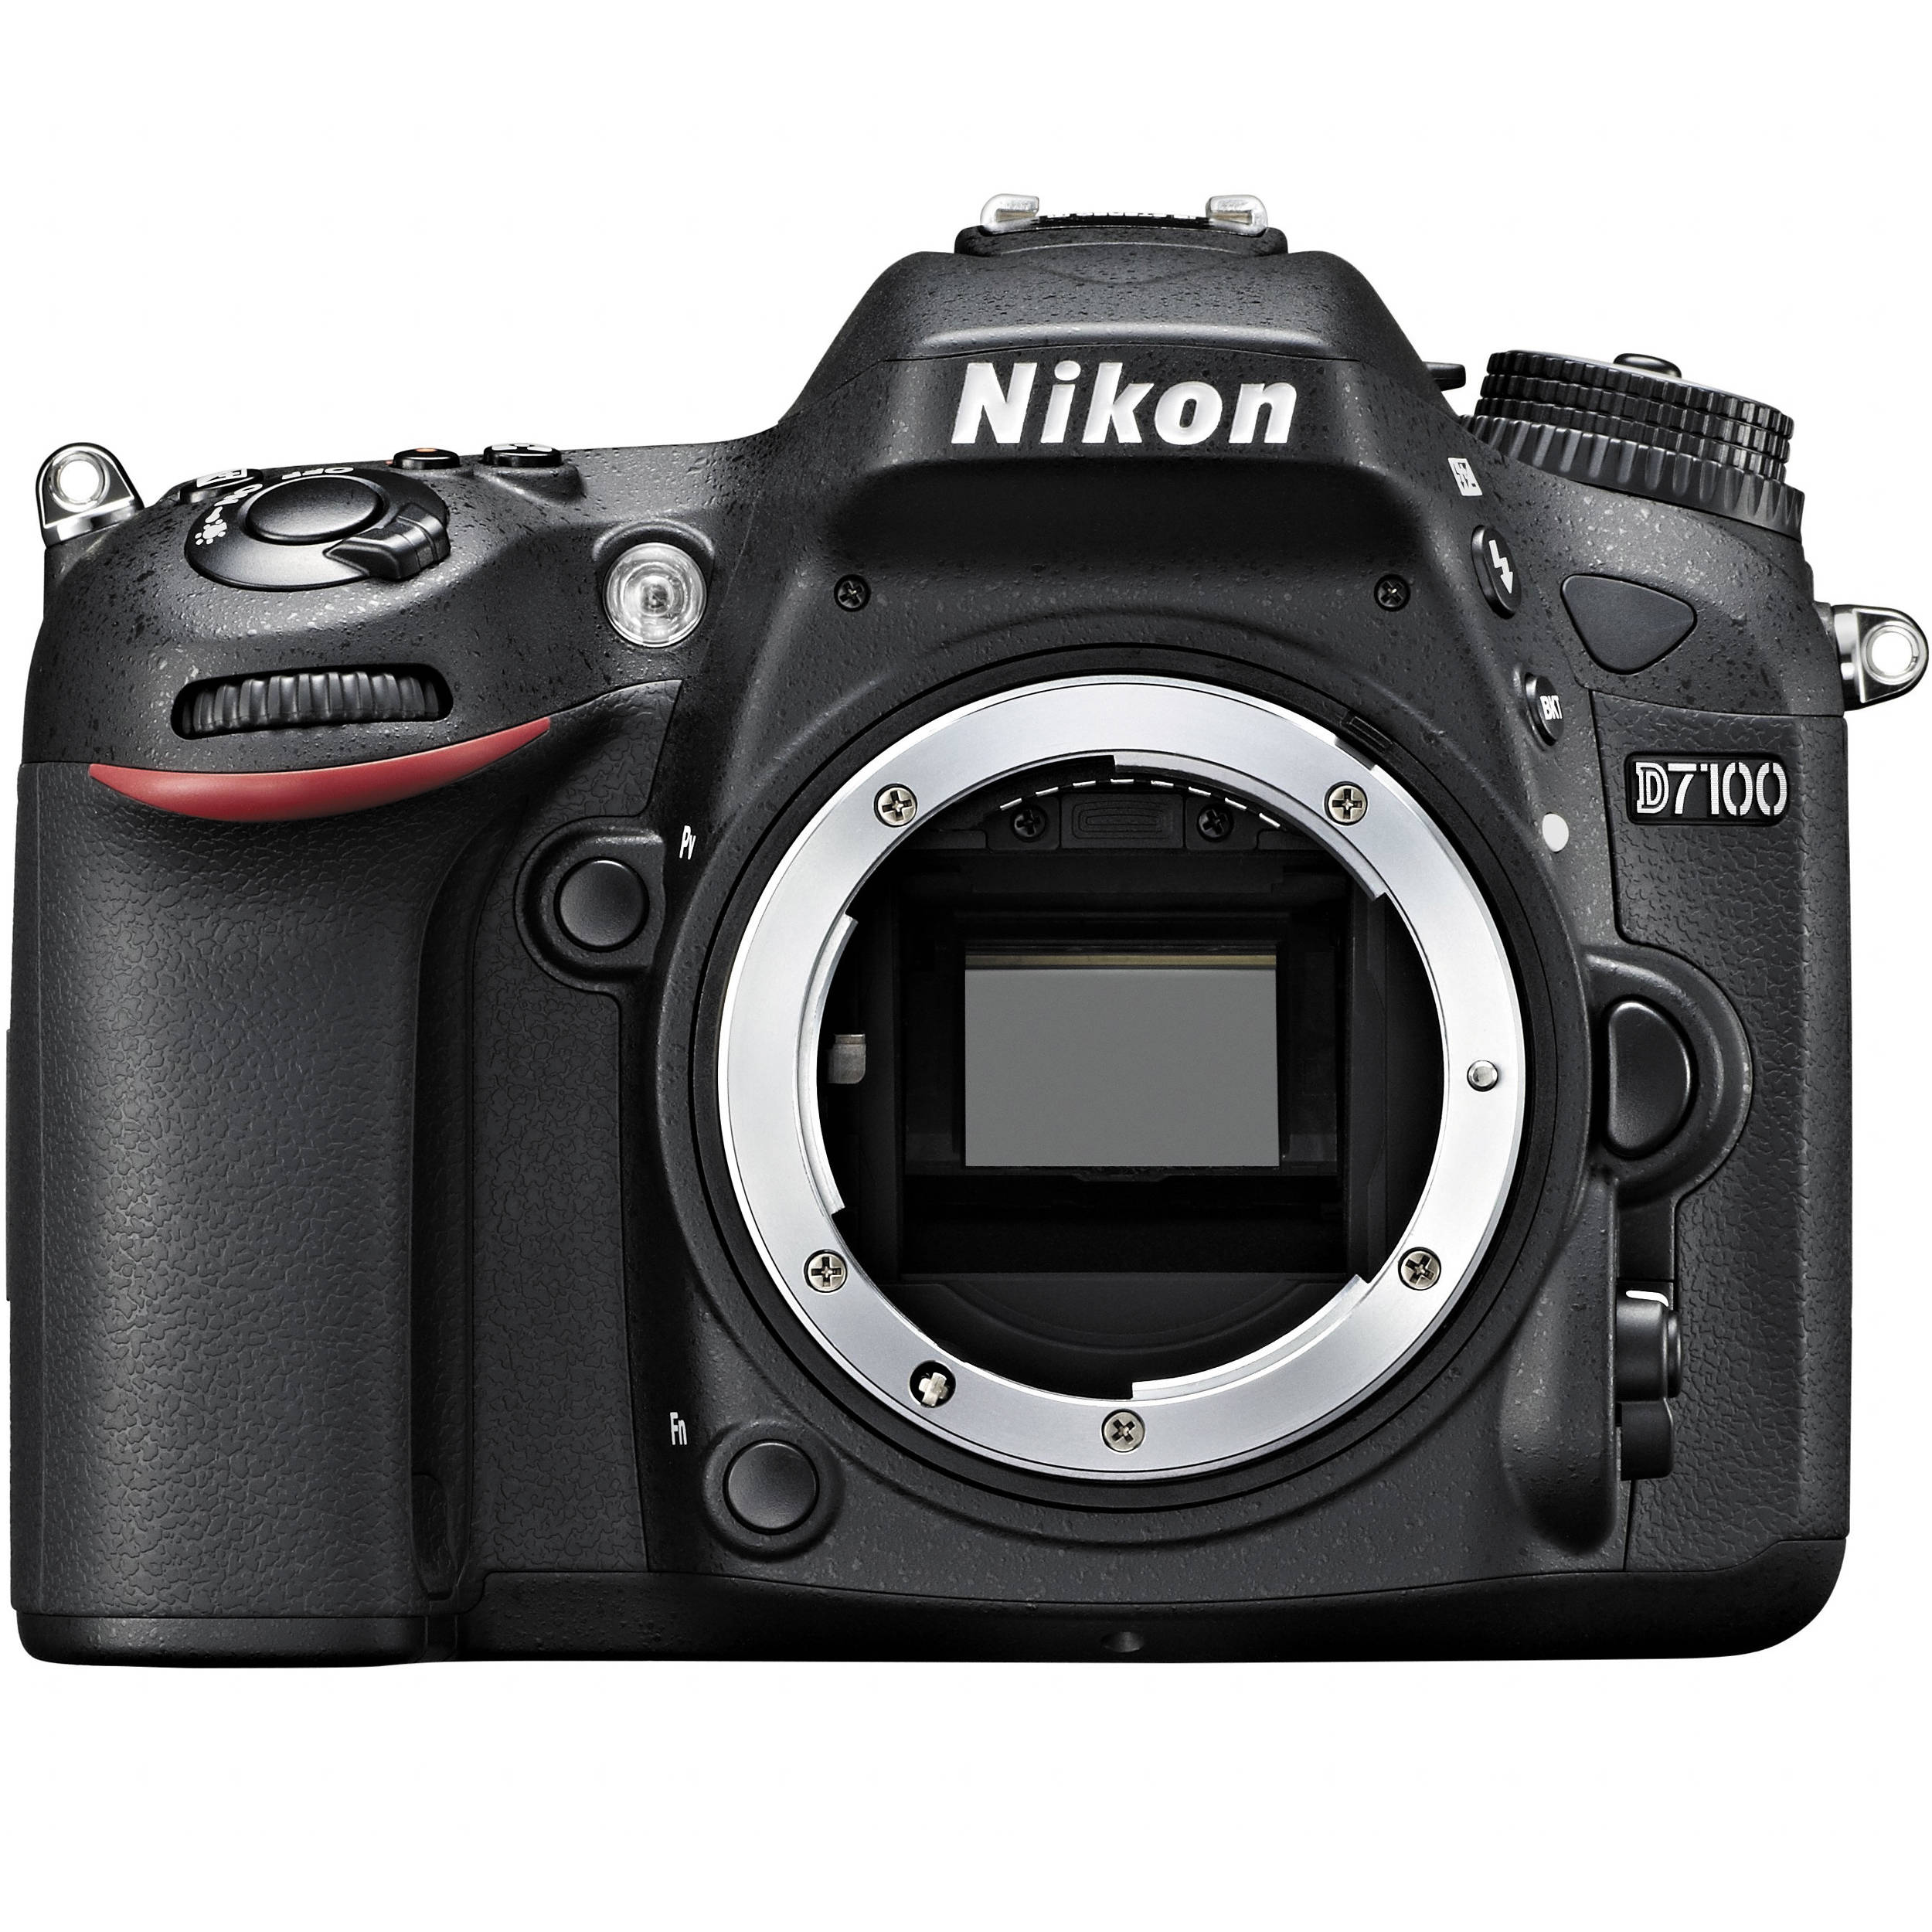 Test Driving Nikon D90 Video With 10 >> Nikon D7100 Replacement For Nikon D90 B H Photo Video